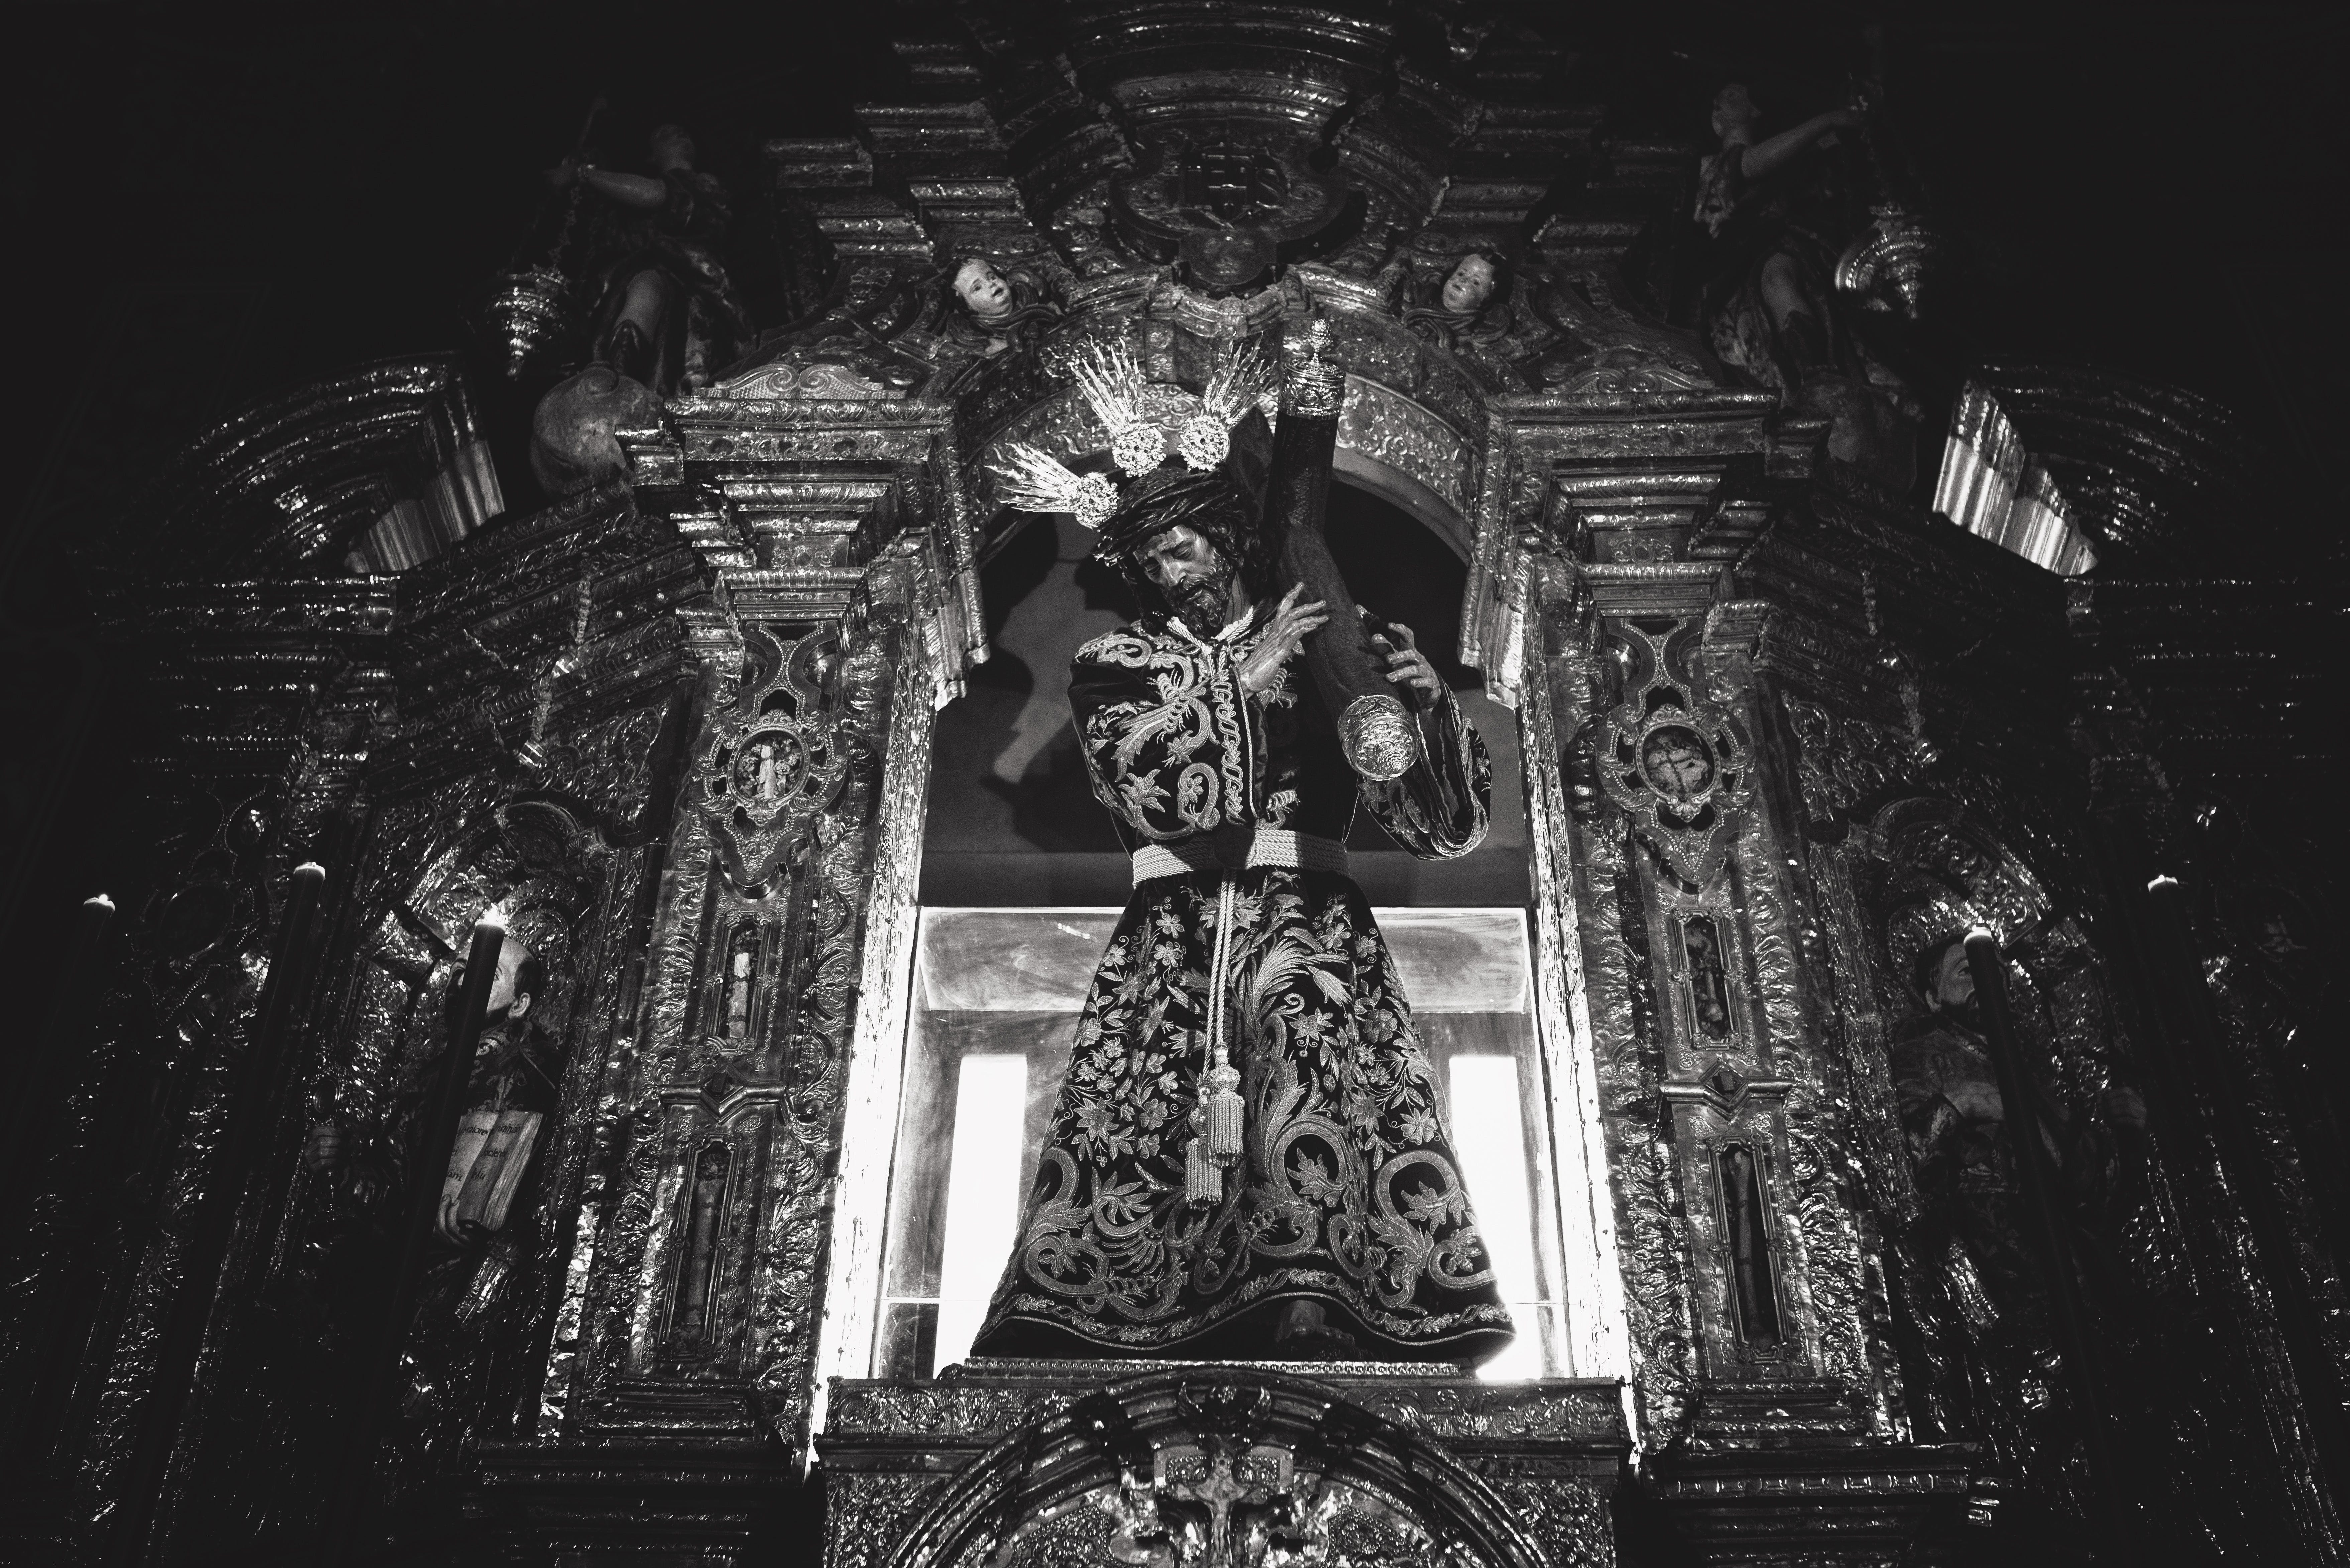 Grayscale Photography of Jesus Christ Statue